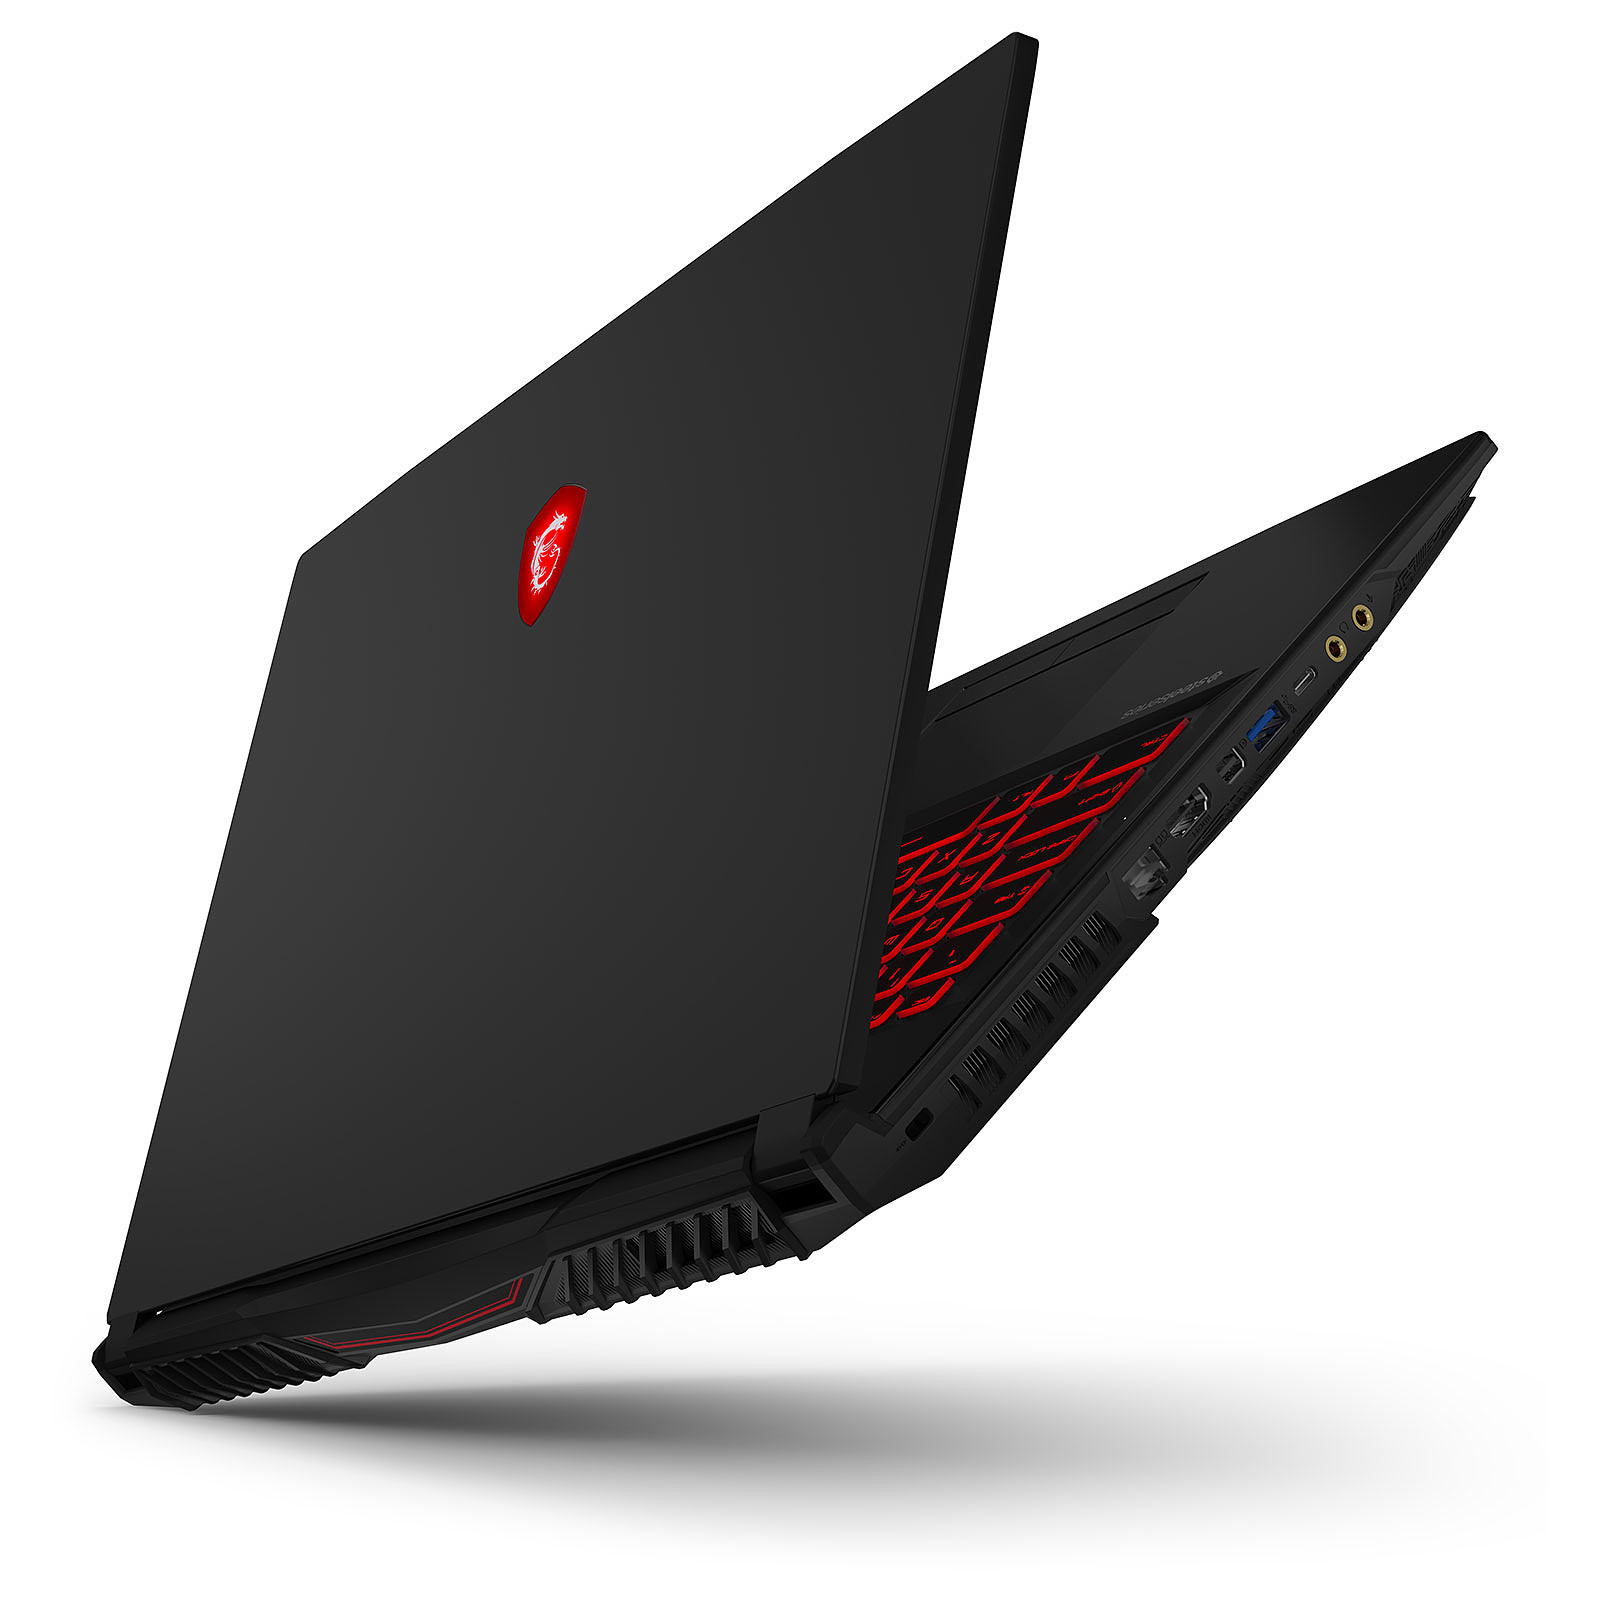 "MSI 17.3"" GL75 9SD i7 Gaming Laptop i7-9750H, 16GB RAM, GTX 1660 Ti image"